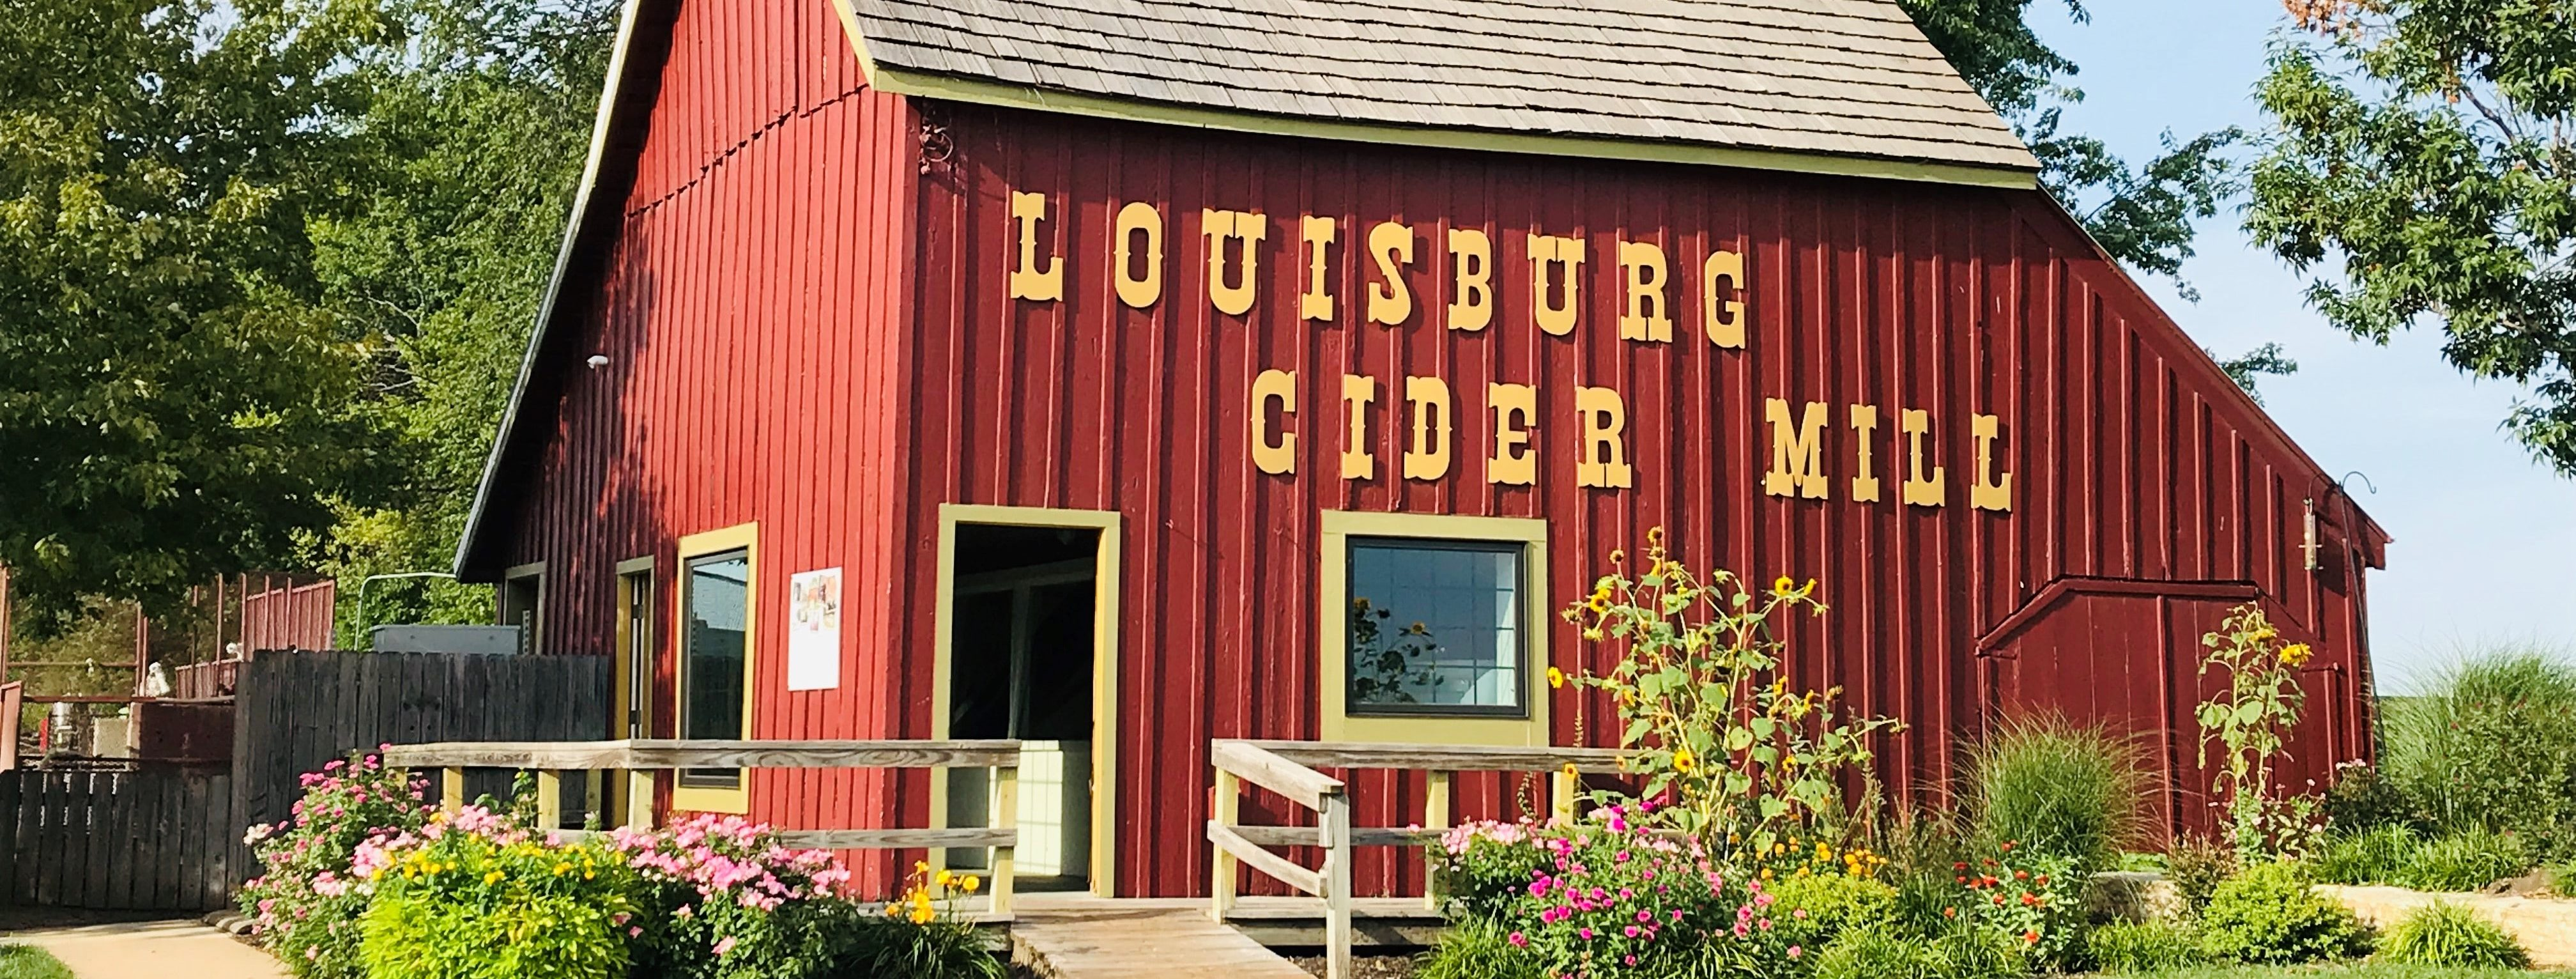 louisburg big red barn